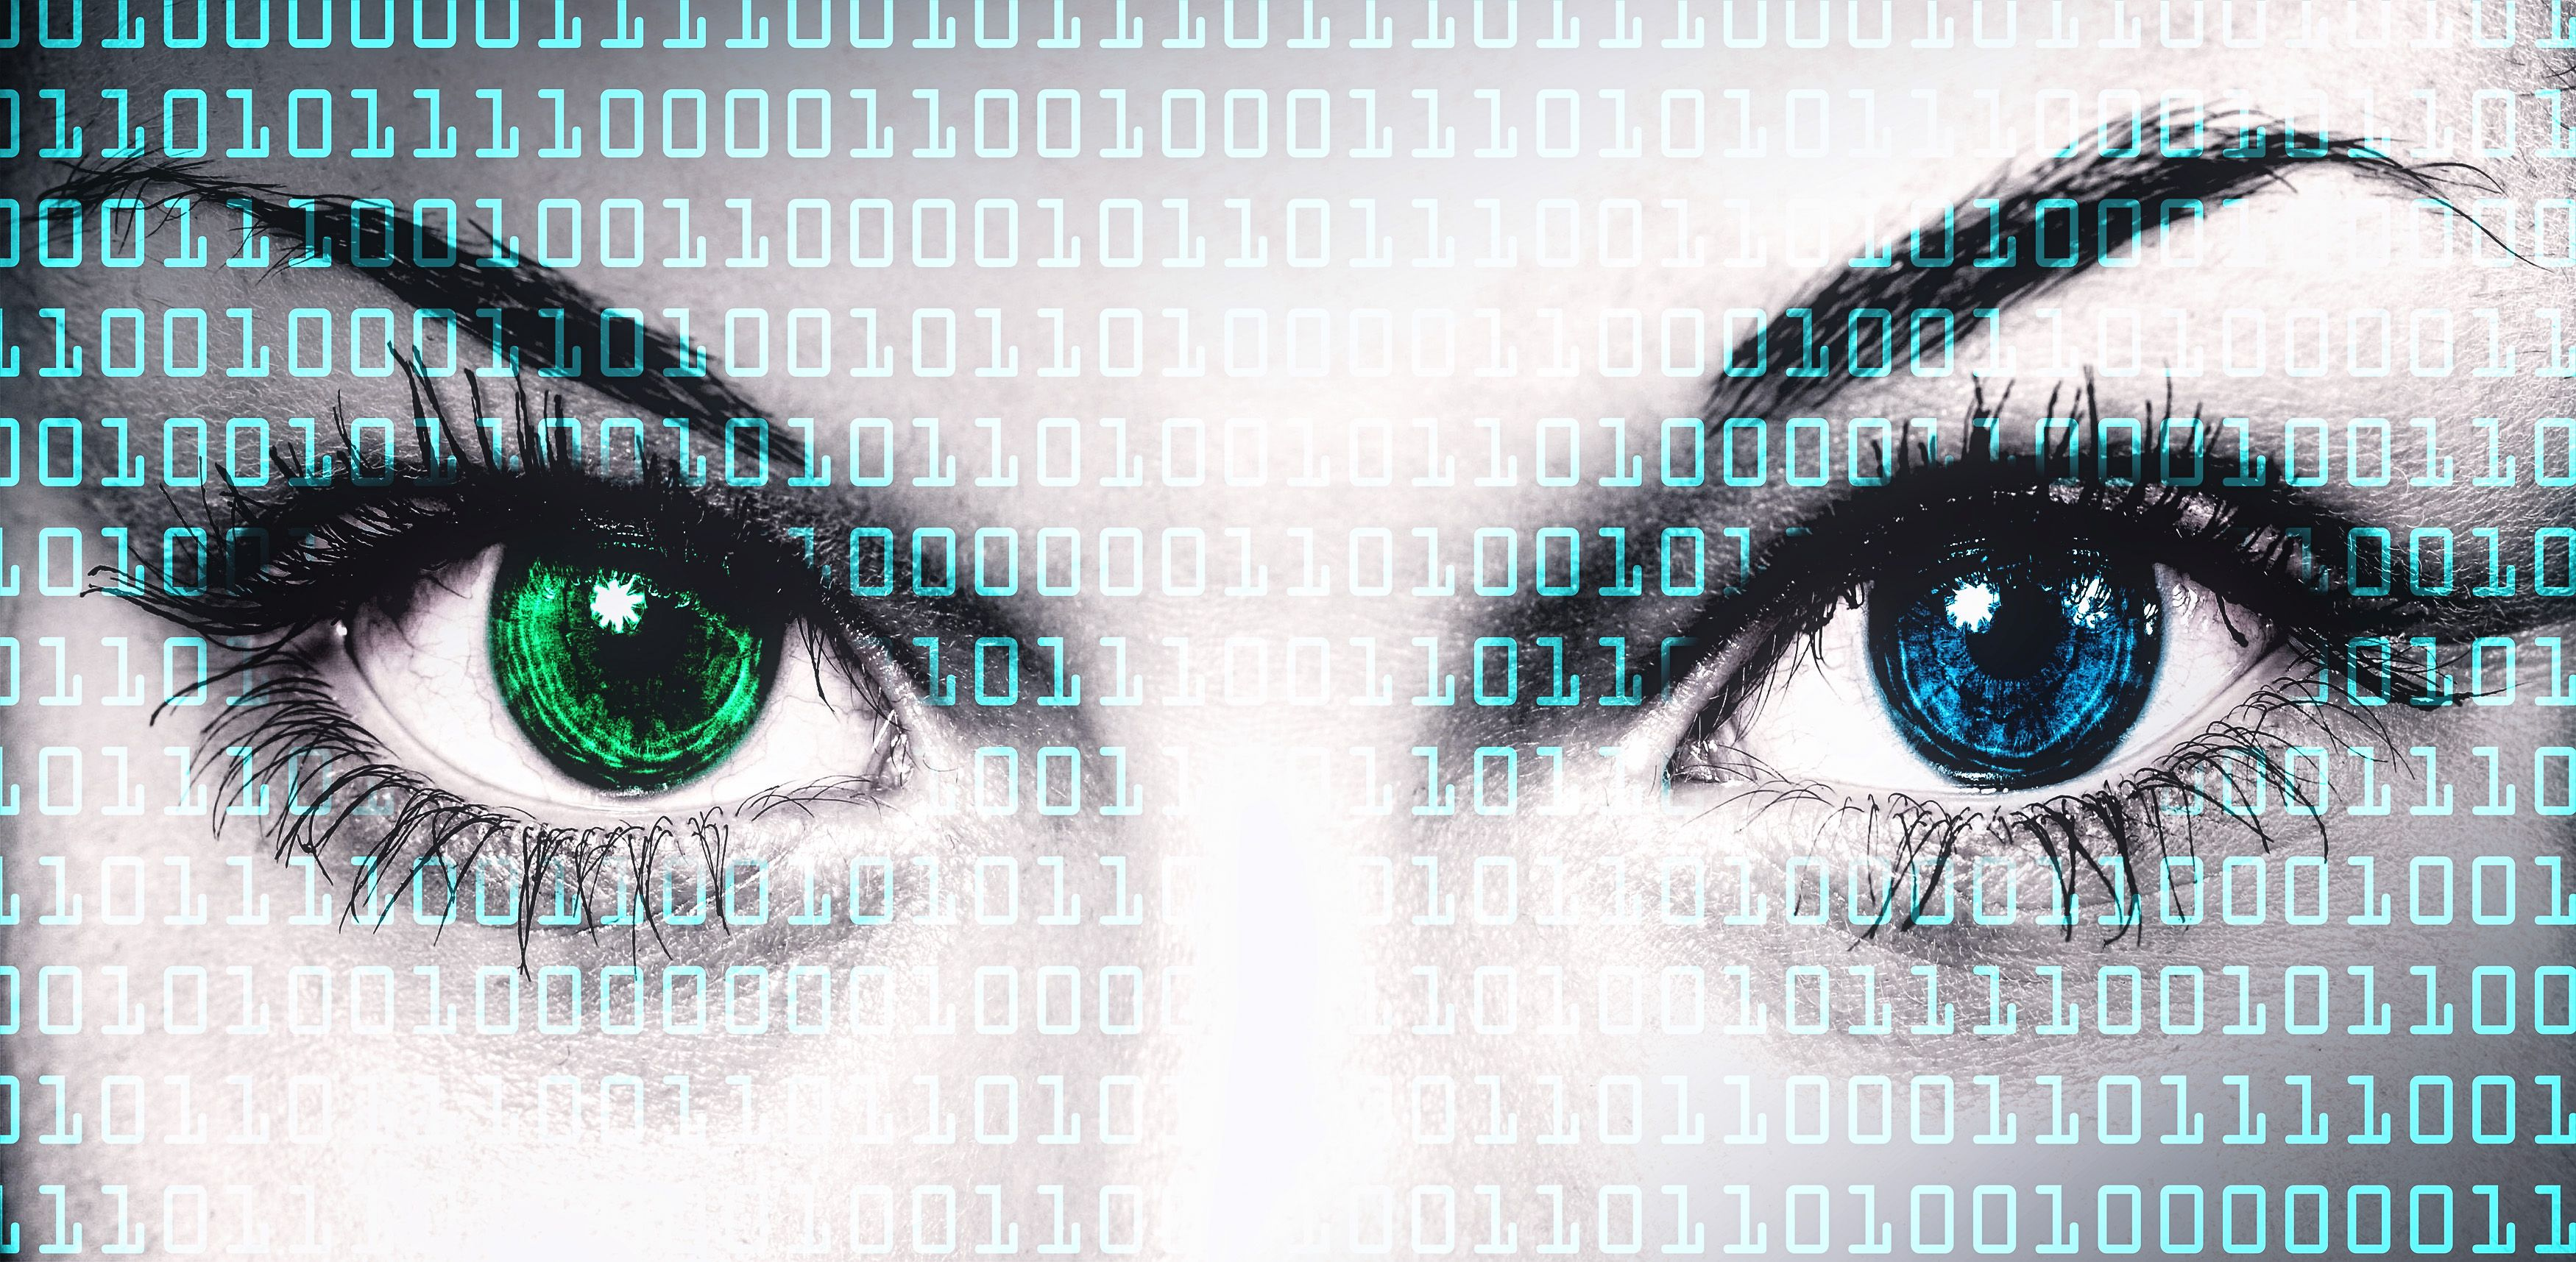 Binary computer code on human face - Online privacy concept